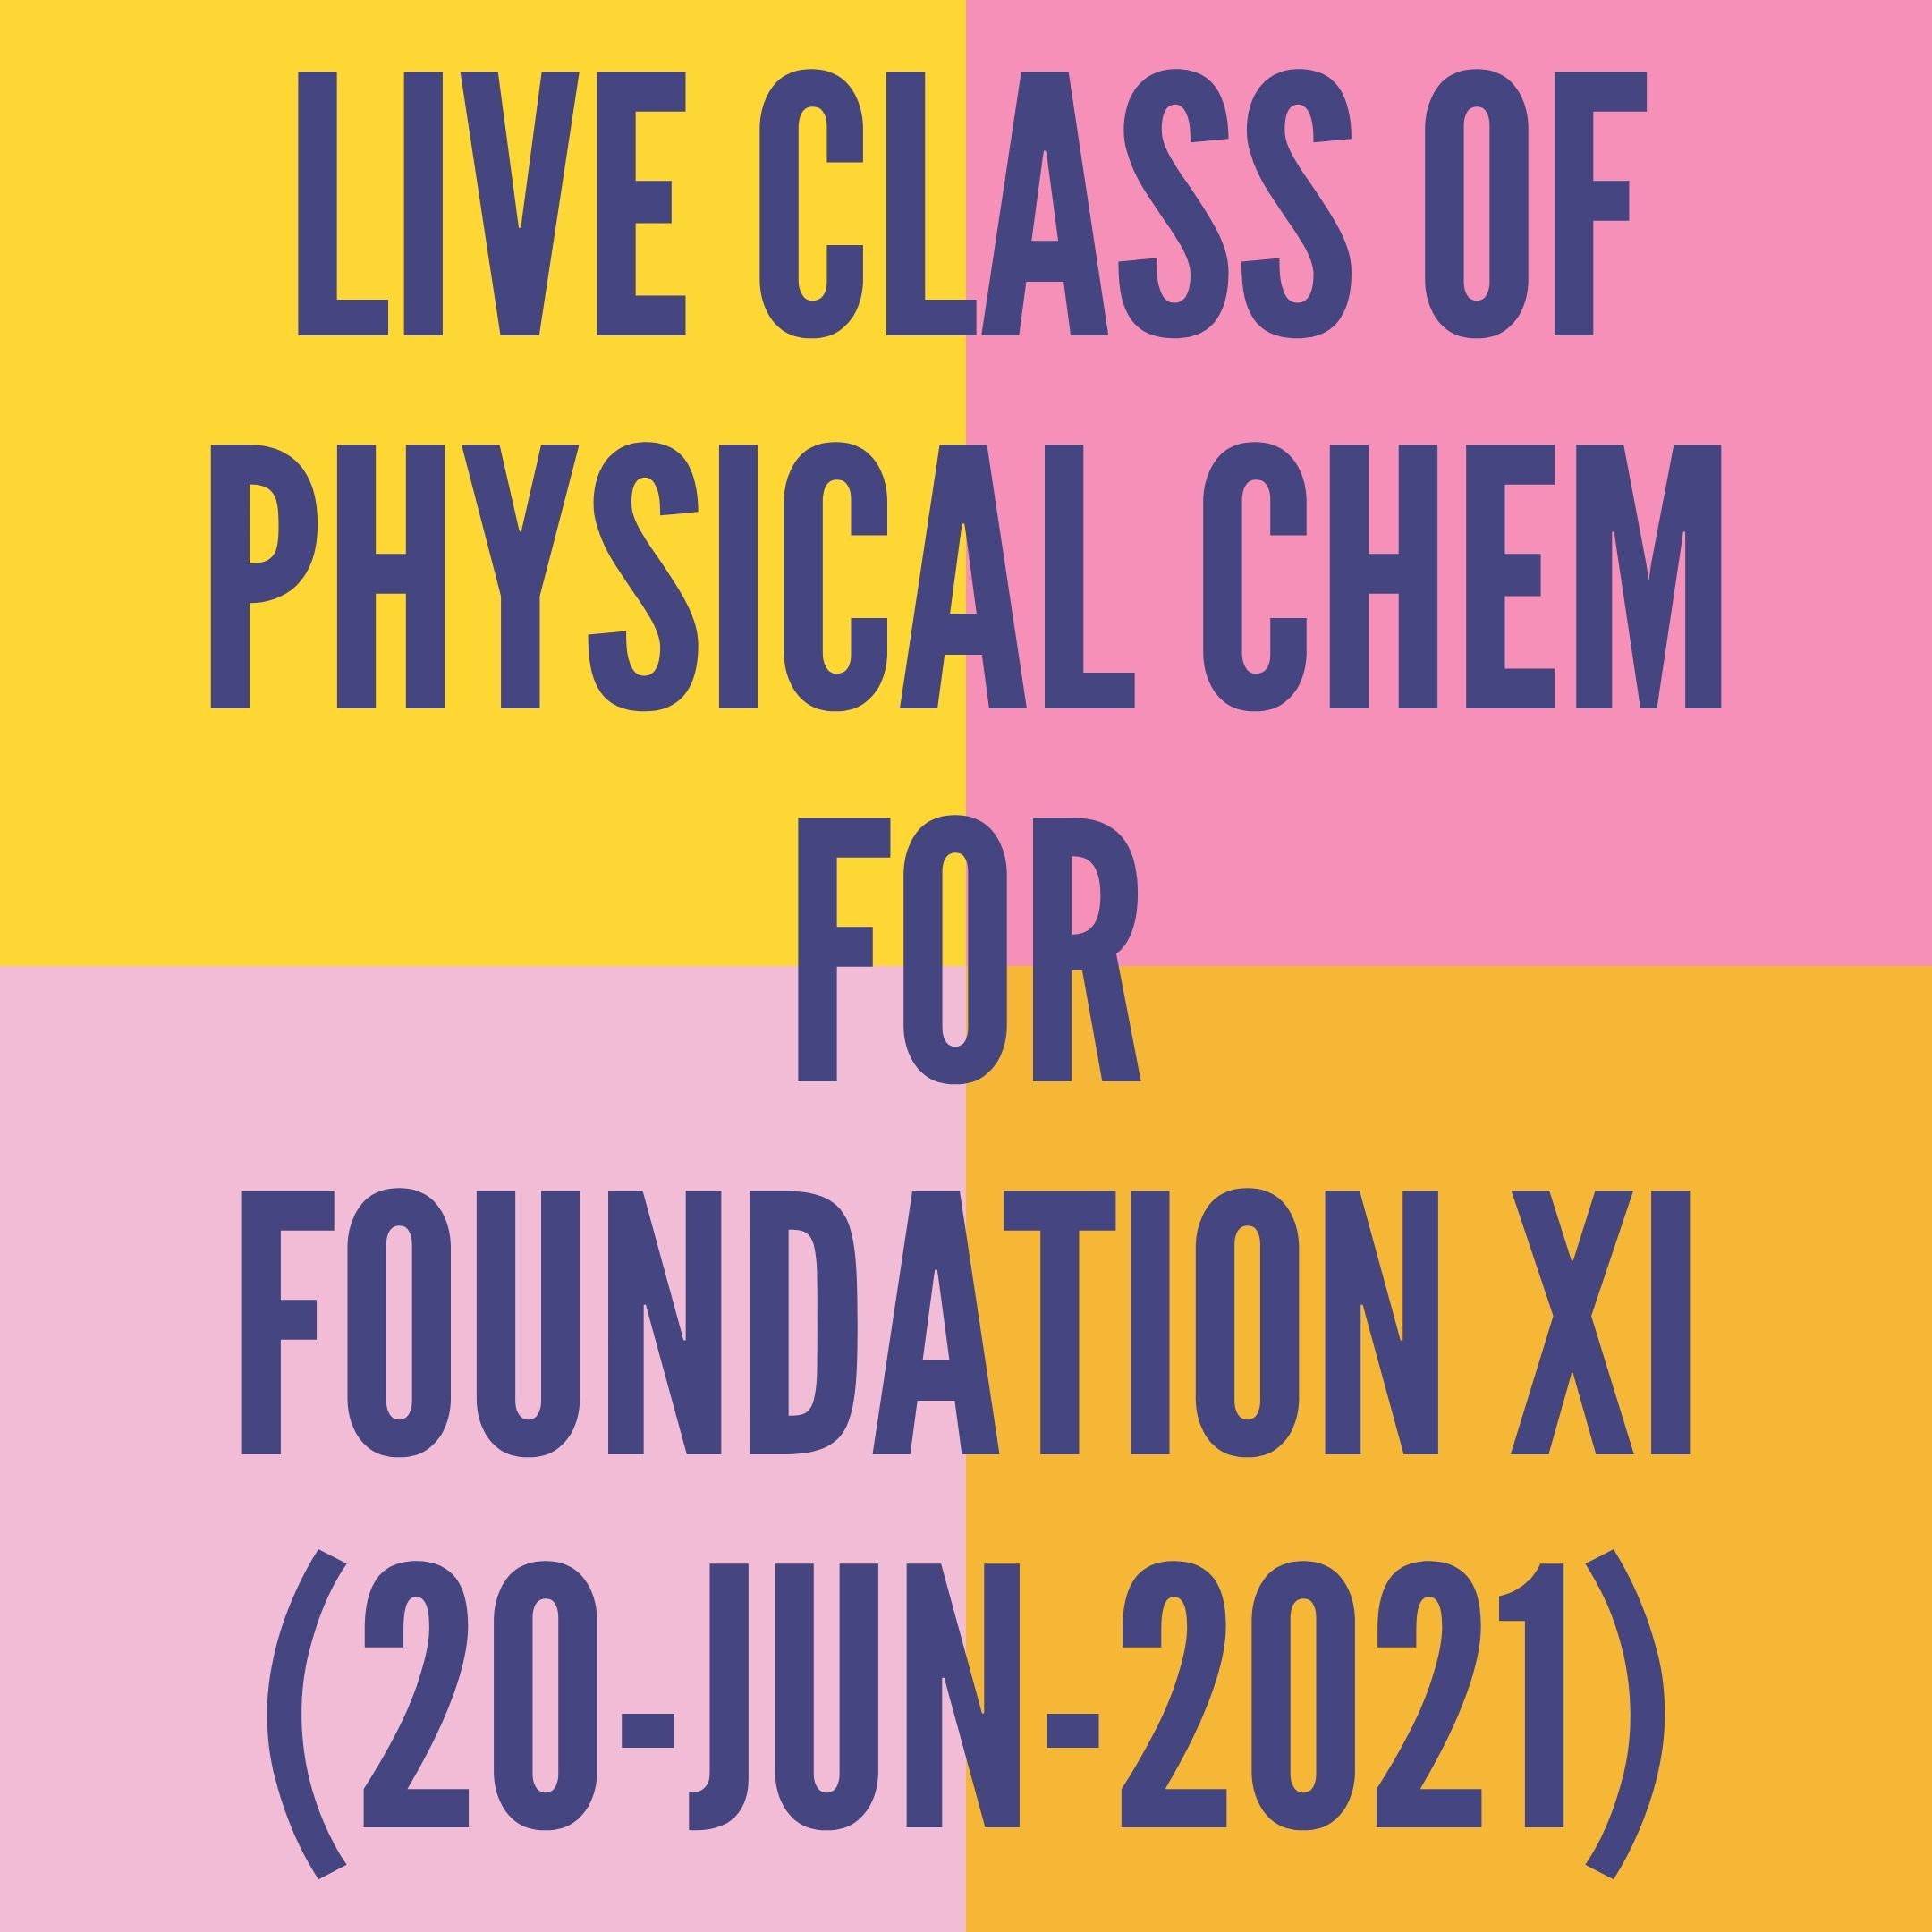 LIVE CLASS OF PHYSICAL CHEMISTRY FOR FOUNDATION XI (20-JUN-2021) SOME BASIC CONCEPT- MOLE